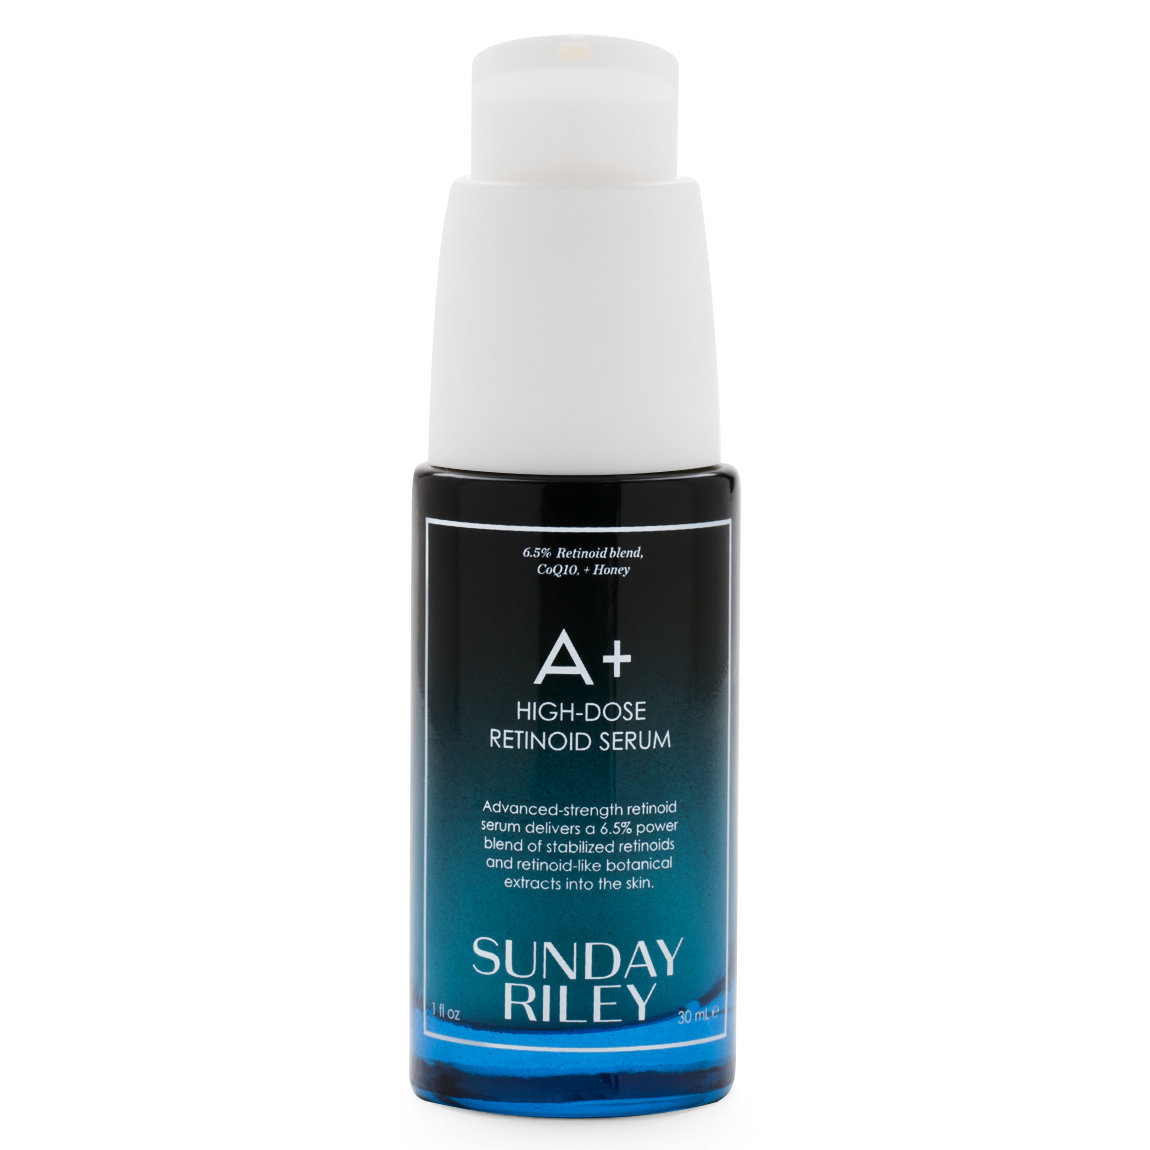 Sunday Riley A+ High Dose Retinoid Serum 30 ml product swatch.